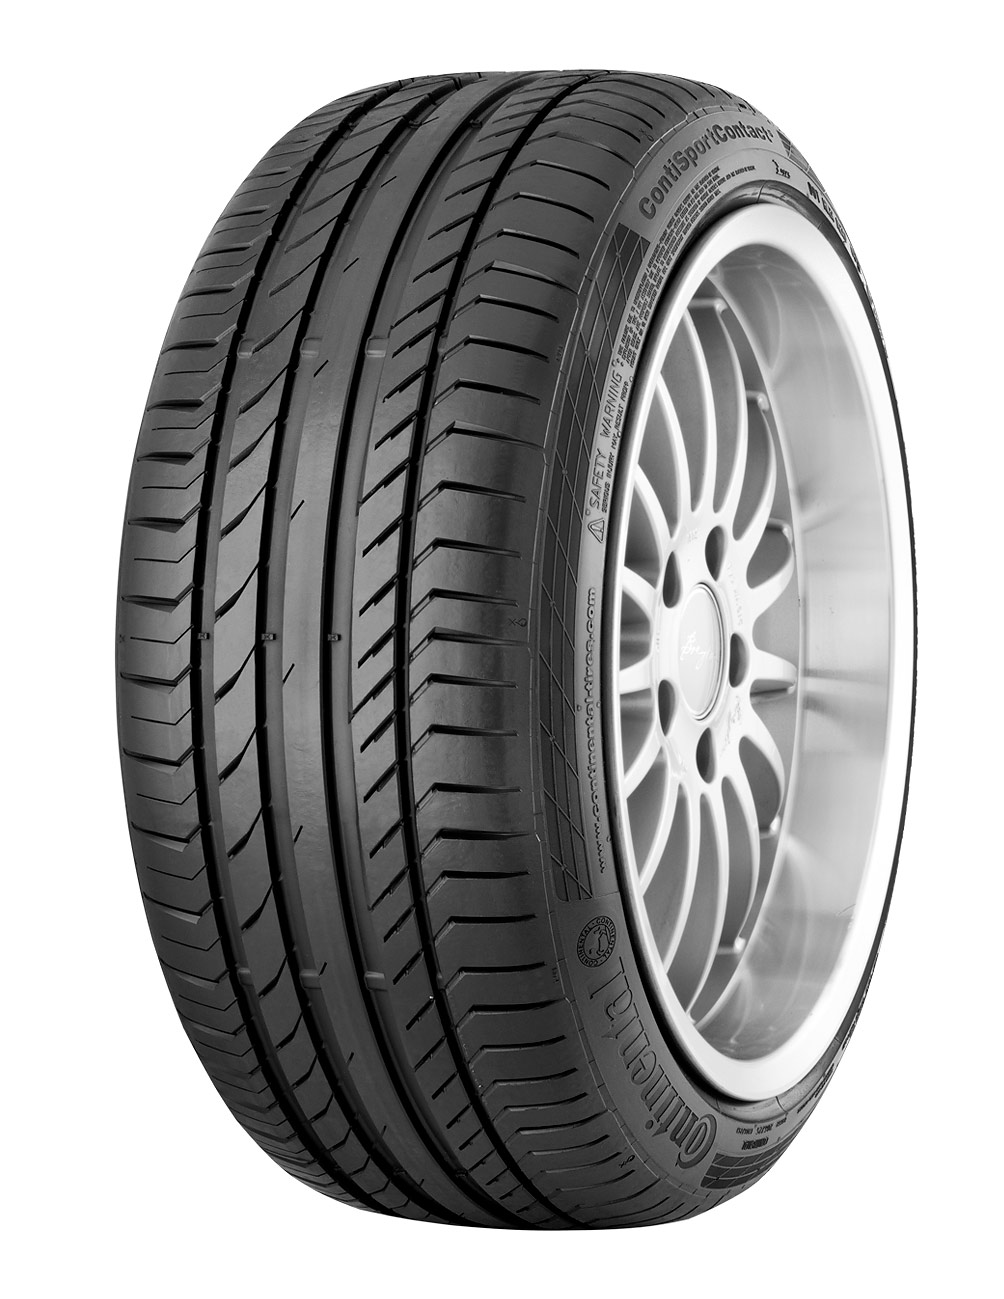 CONTINENTAL 225/45 R17 ContiSportContact 5 91W MO